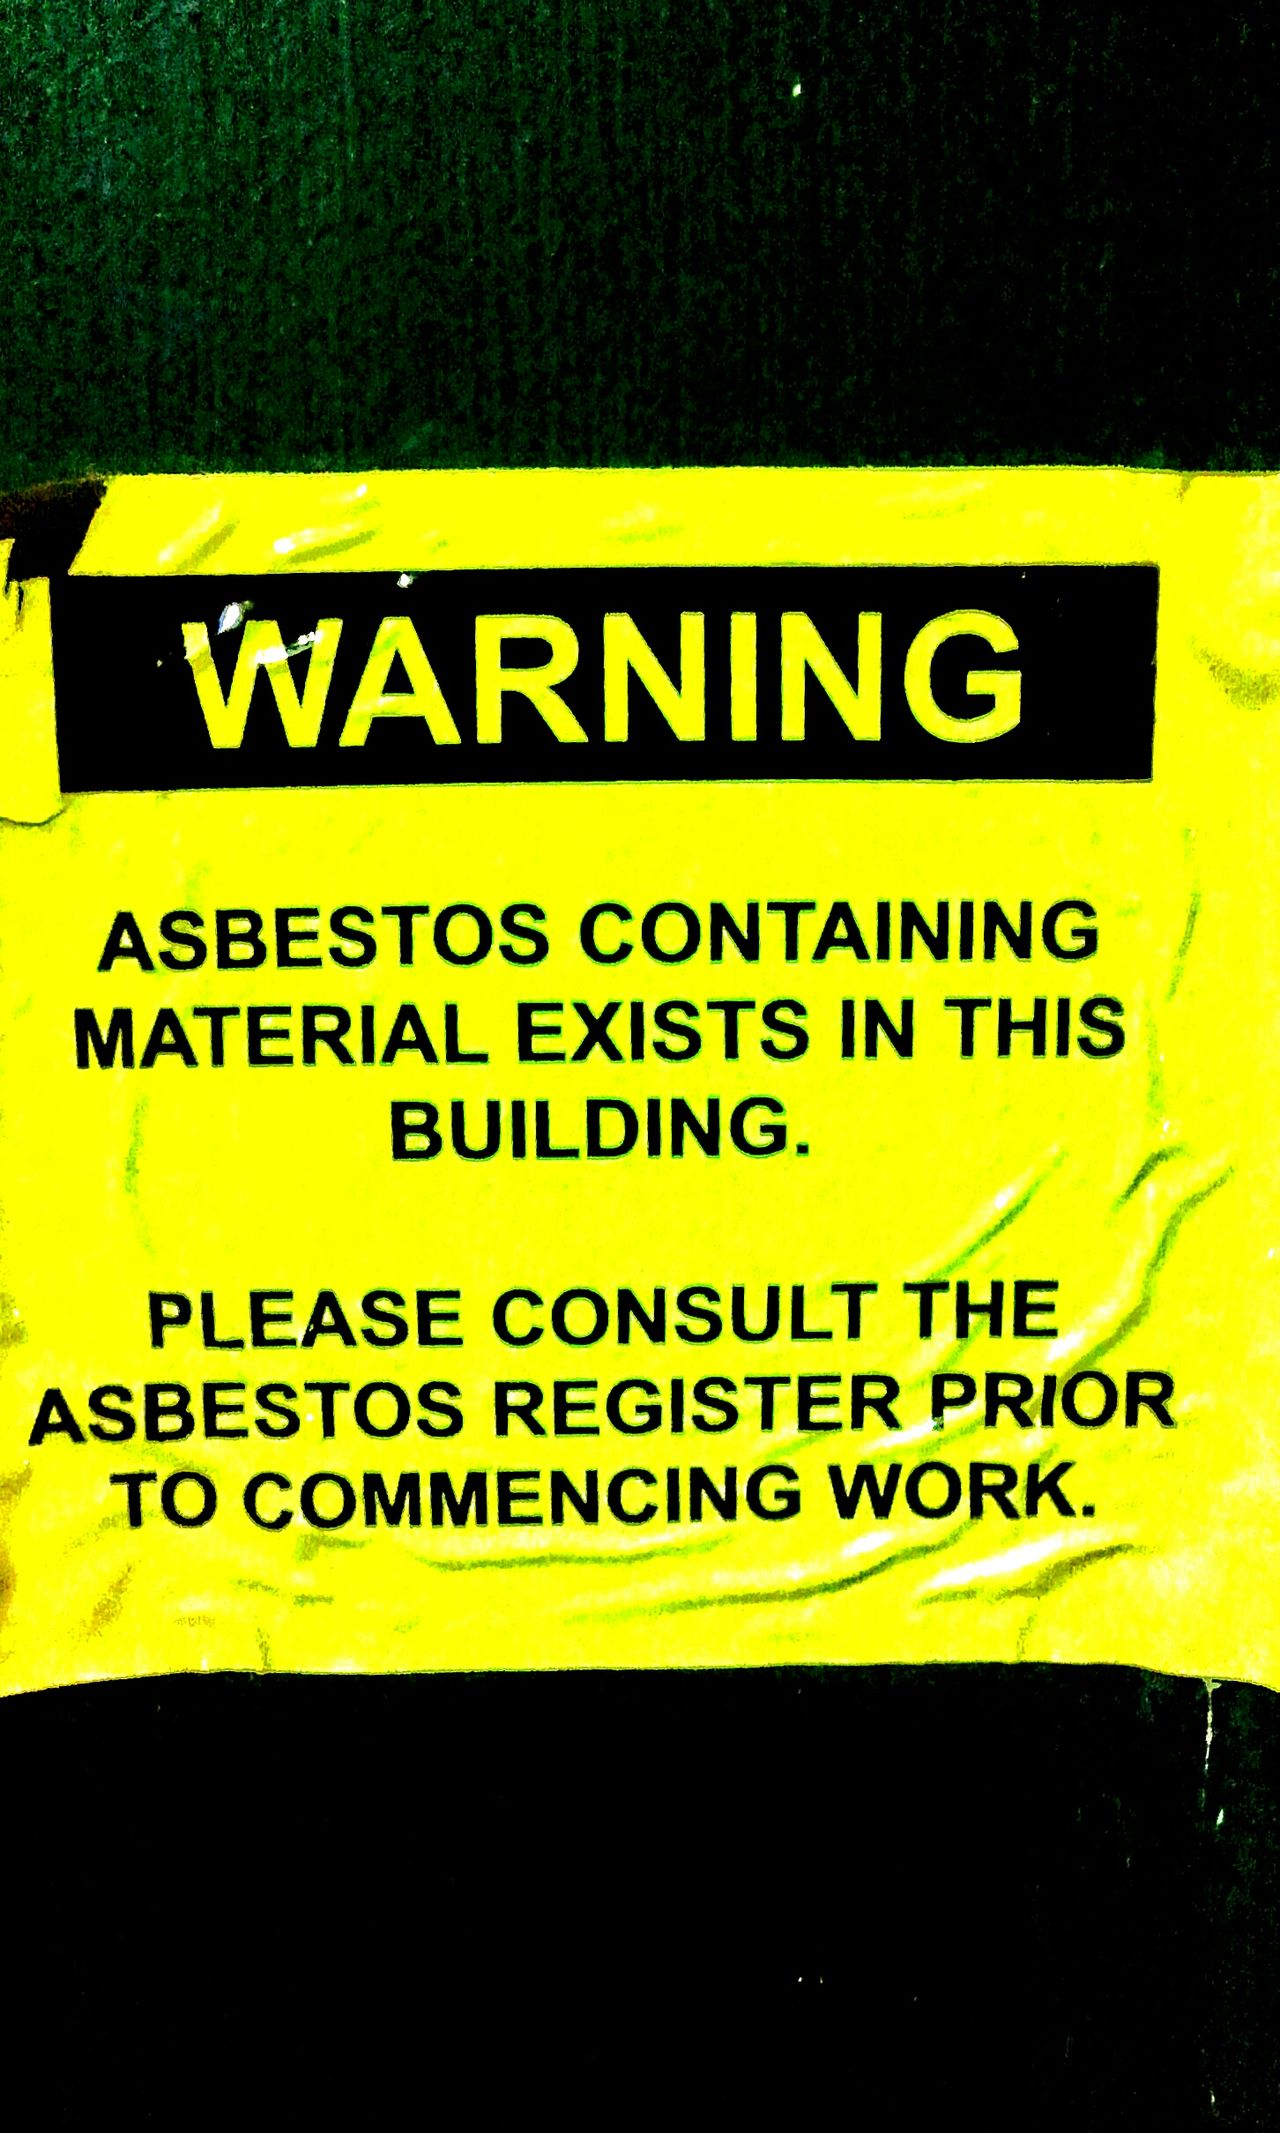 Warning Signs  Warning Signs_collection Warning Sign Sign Signage Lung Cancer Signs, Signs, & More Signs Signporn Signs Asbestos Hazardous To Your Health Warningsign Asbestos Warning Signs Hazardous Materials Warningsigns Warningstickers Warningstickerart Stickers Stickerslapper Asbestos Kills Carcinogenic Asbestos Insulation Danger Lung Cancer Awareness